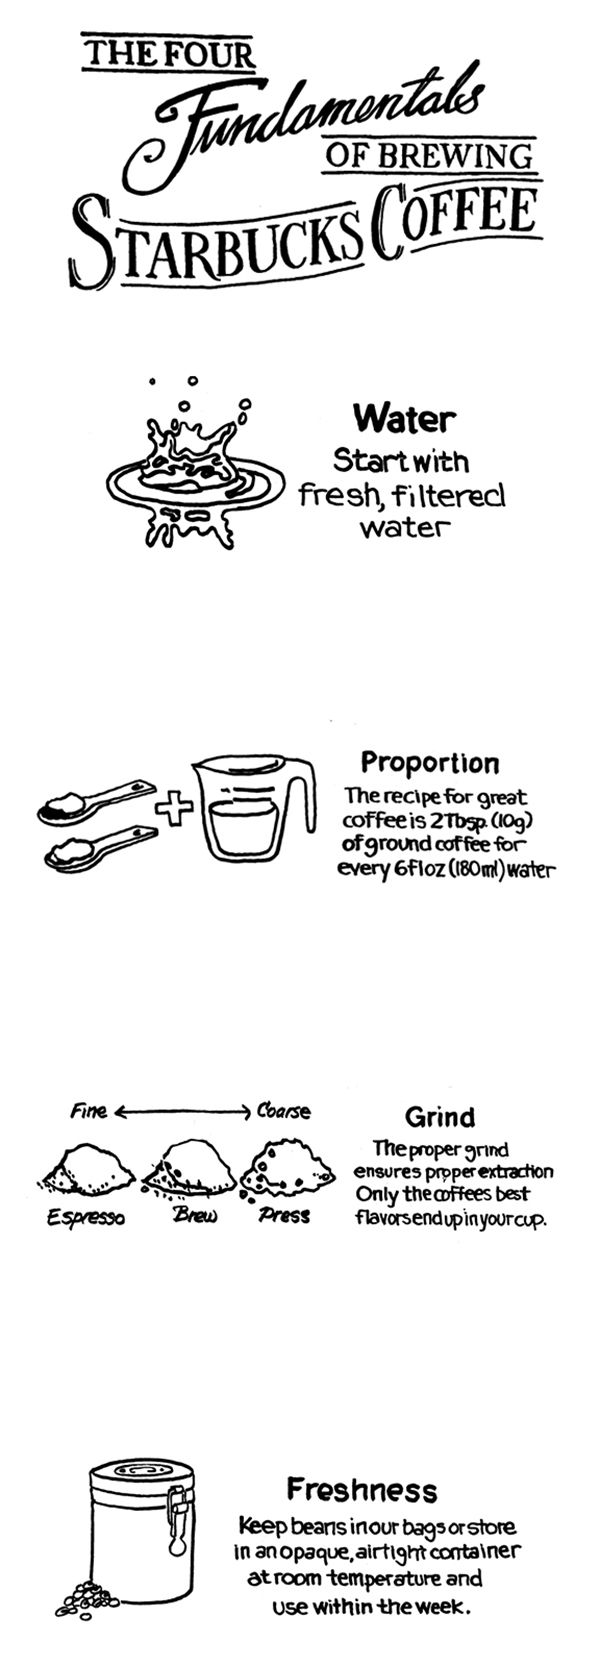 4 basics for making the perfect cup of Coffee At Home.